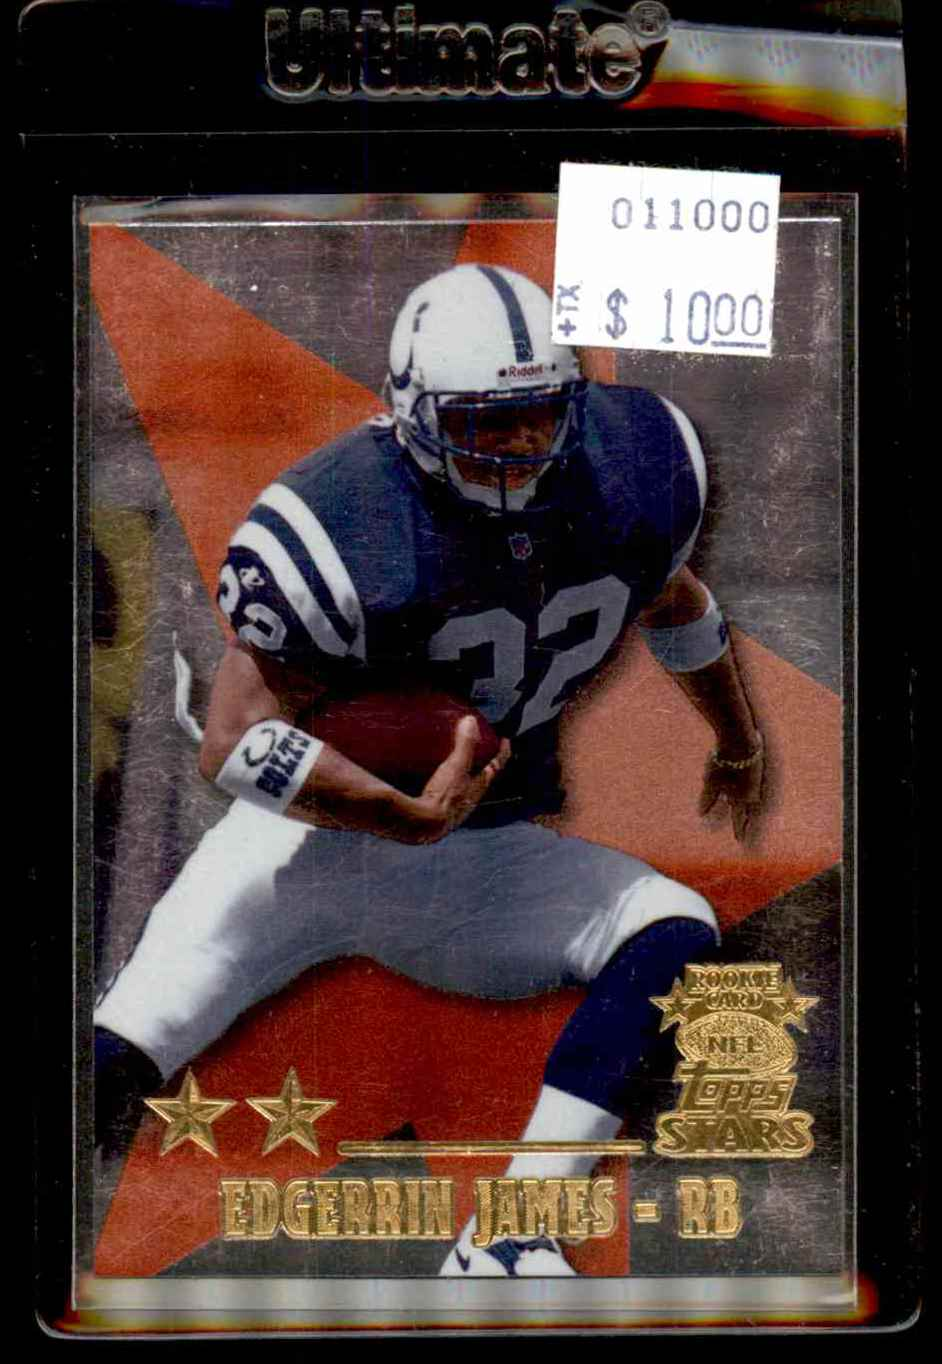 1999 Topps Stars Two Star Edgerrin James #8 card front image